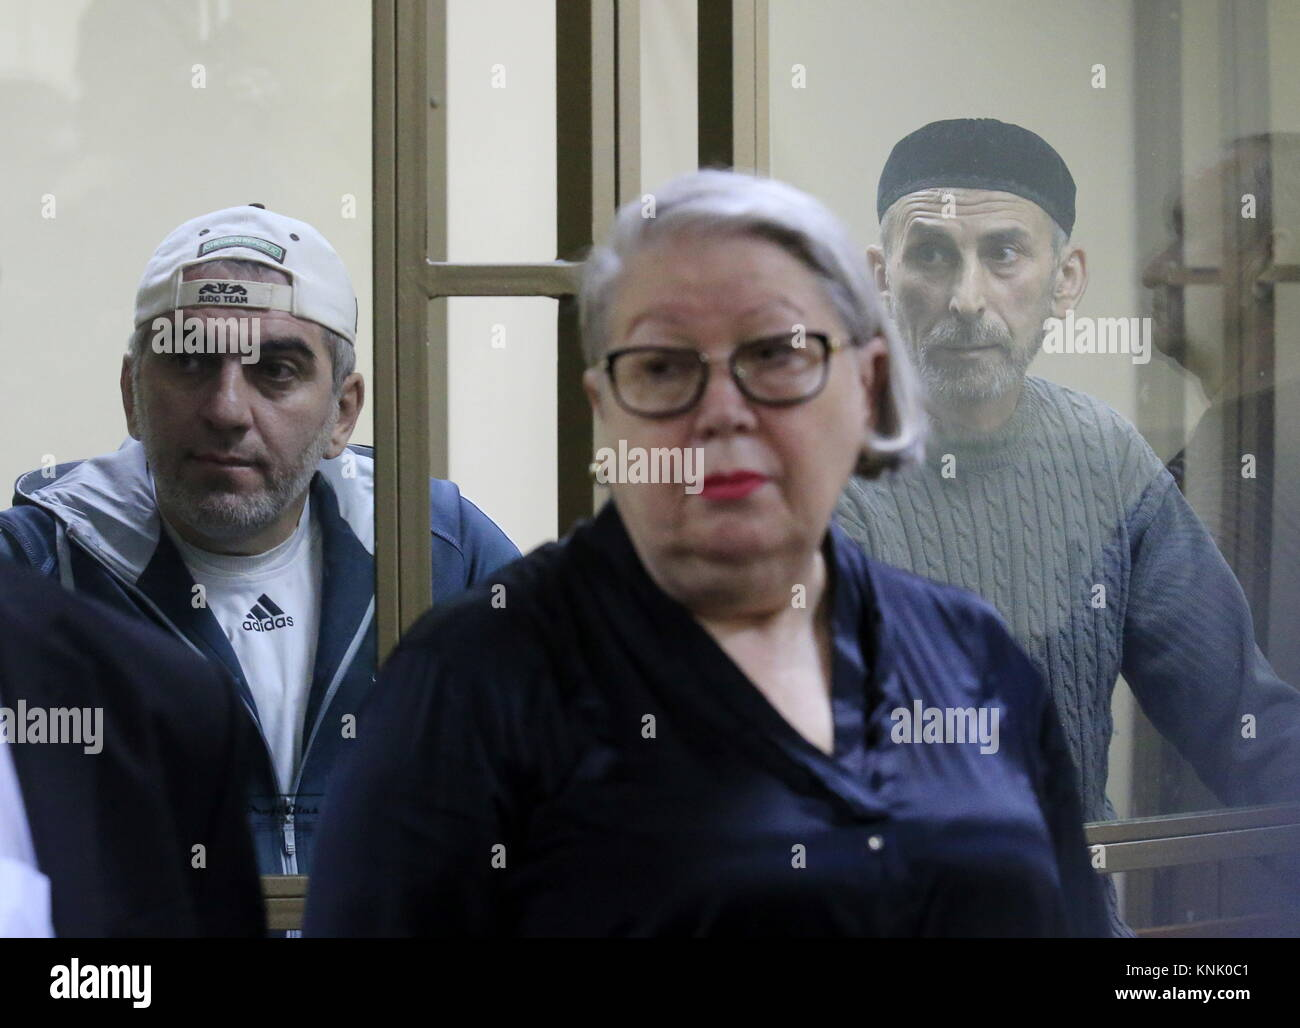 Rostov On Don, Russia. 13th Dec, 2017. Ramzan Belyalov (L back) and Magomed Mazdayev (R back), charged with taking - Stock Image